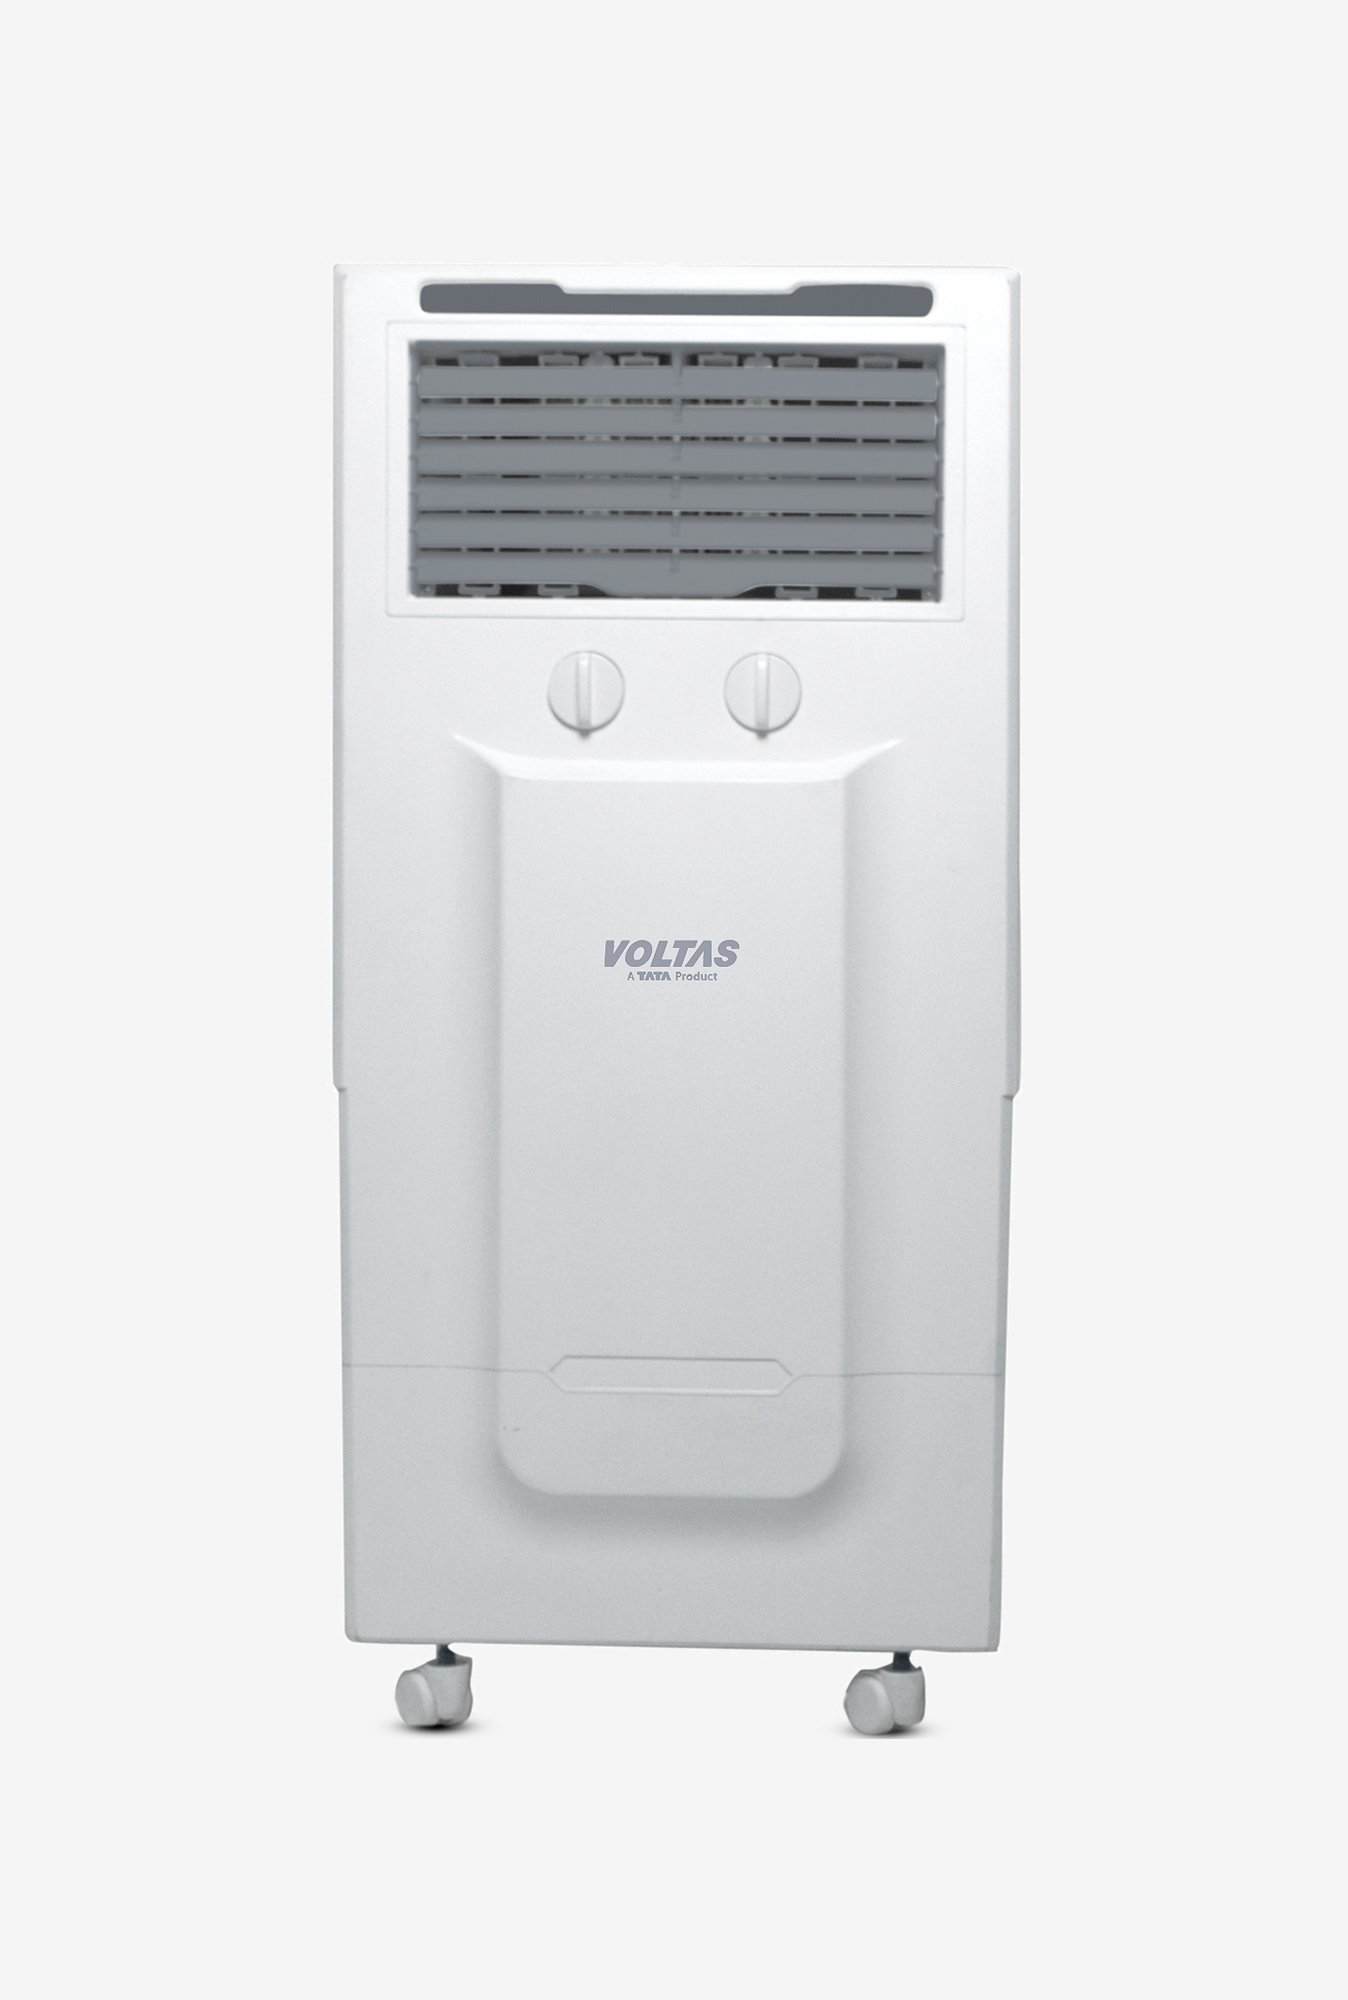 Air Coolers Upto 40 Off Buy Online At Best Price On Inverter Conditioner Renesas Electronics India Voltas Vd P34mh 34l 140 Watts Personal Cooler White